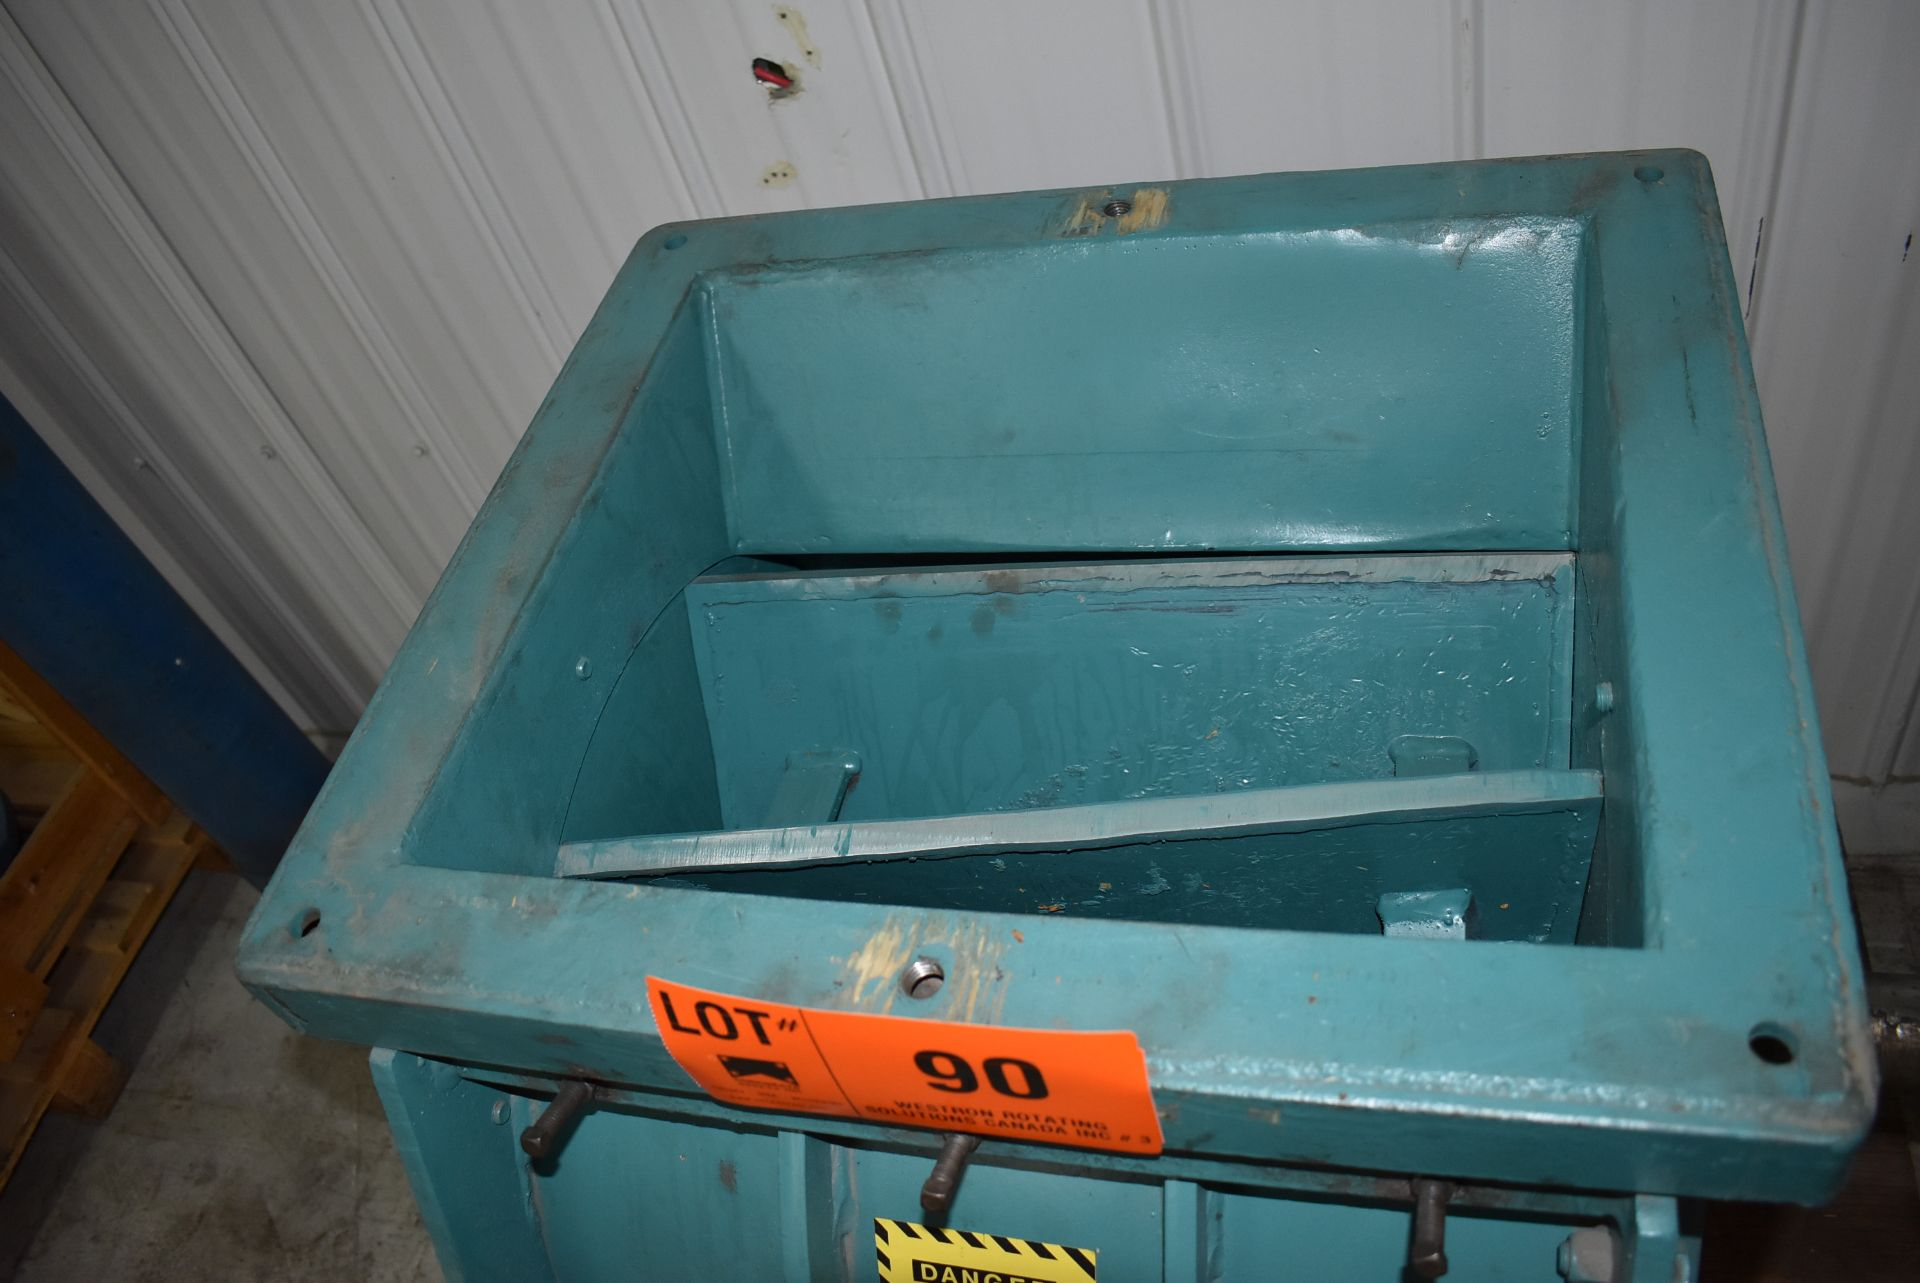 ACO FEEDER INDUSTRIAL WOOD CHIPPER, S/N: N/A [SKU 1357] (CI) [RIGGING FEE FOR LOT #90 - $25 CAD PLUS - Image 4 of 4